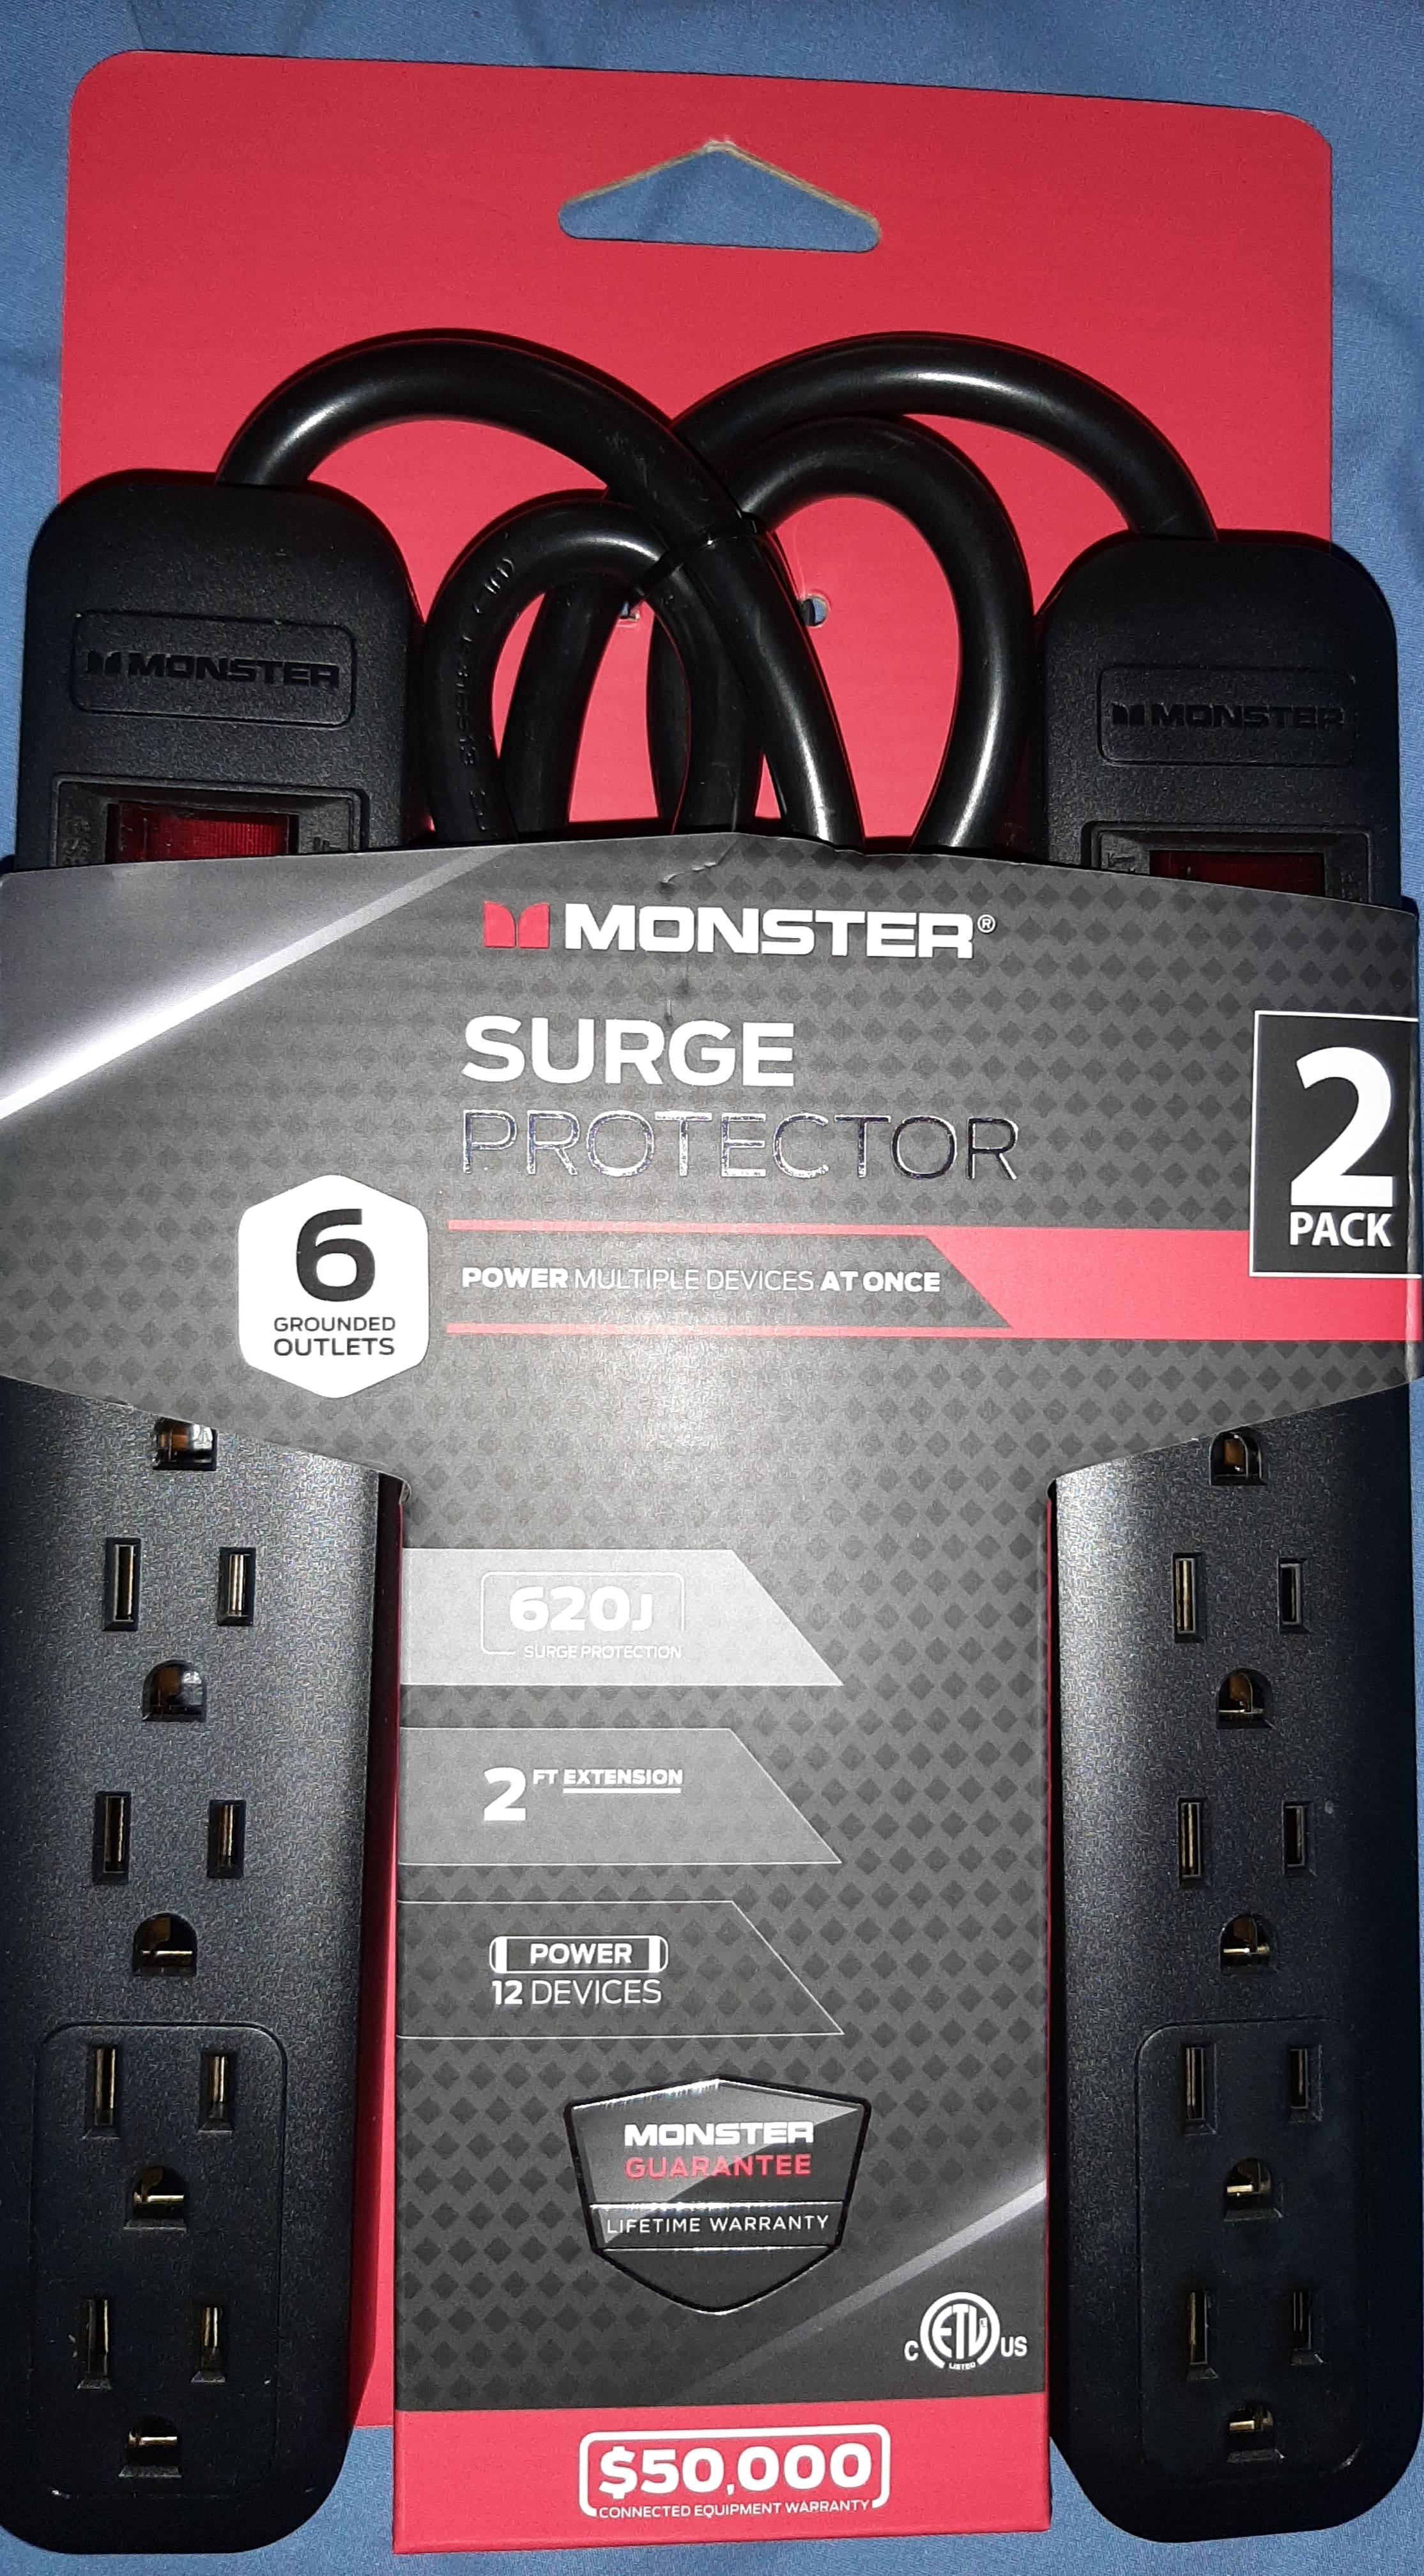 Two pack of six outlet Monster brand surge protectors - as low as $3 @ Walmart - IN STORE ONLY - YMMV